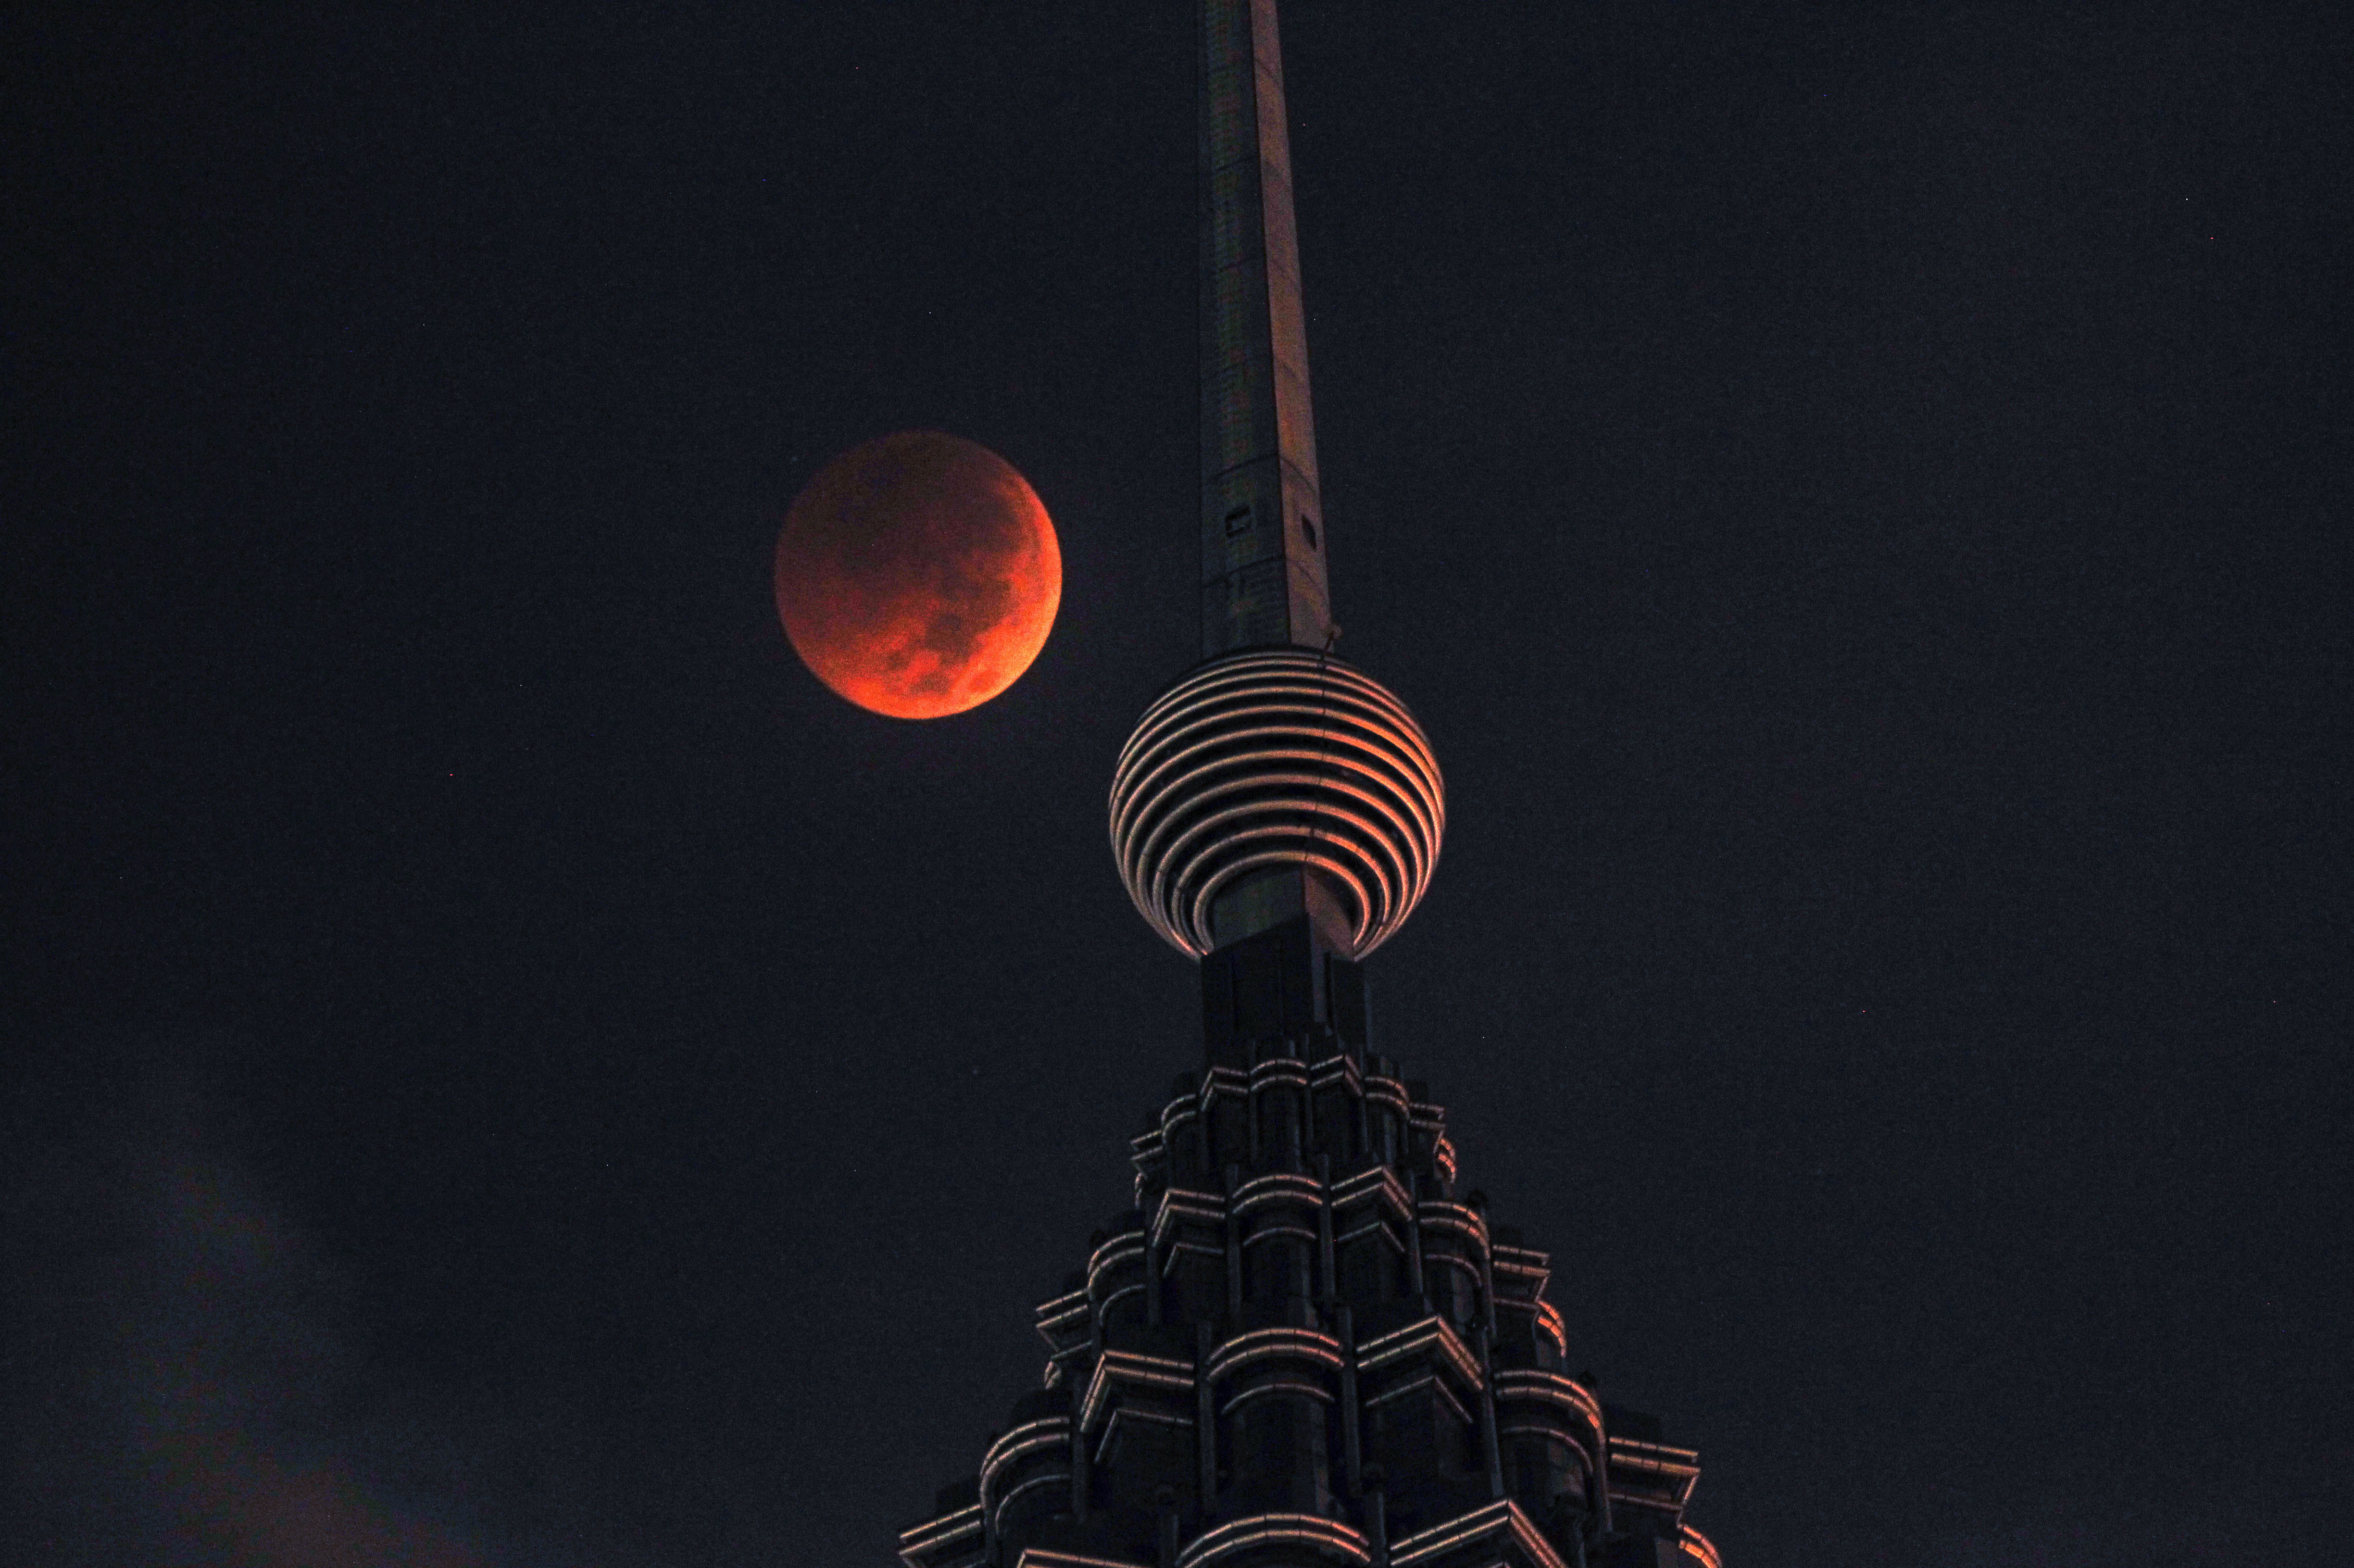 A full moon sets over Petronas Twin Tower during a complete lunar eclipse in Kuala Lumpur, Malaysia, Saturday, July 28, 2018. Skywatchers around much of the world are looking forward to a complete lunar eclipse that will be the longest this century.